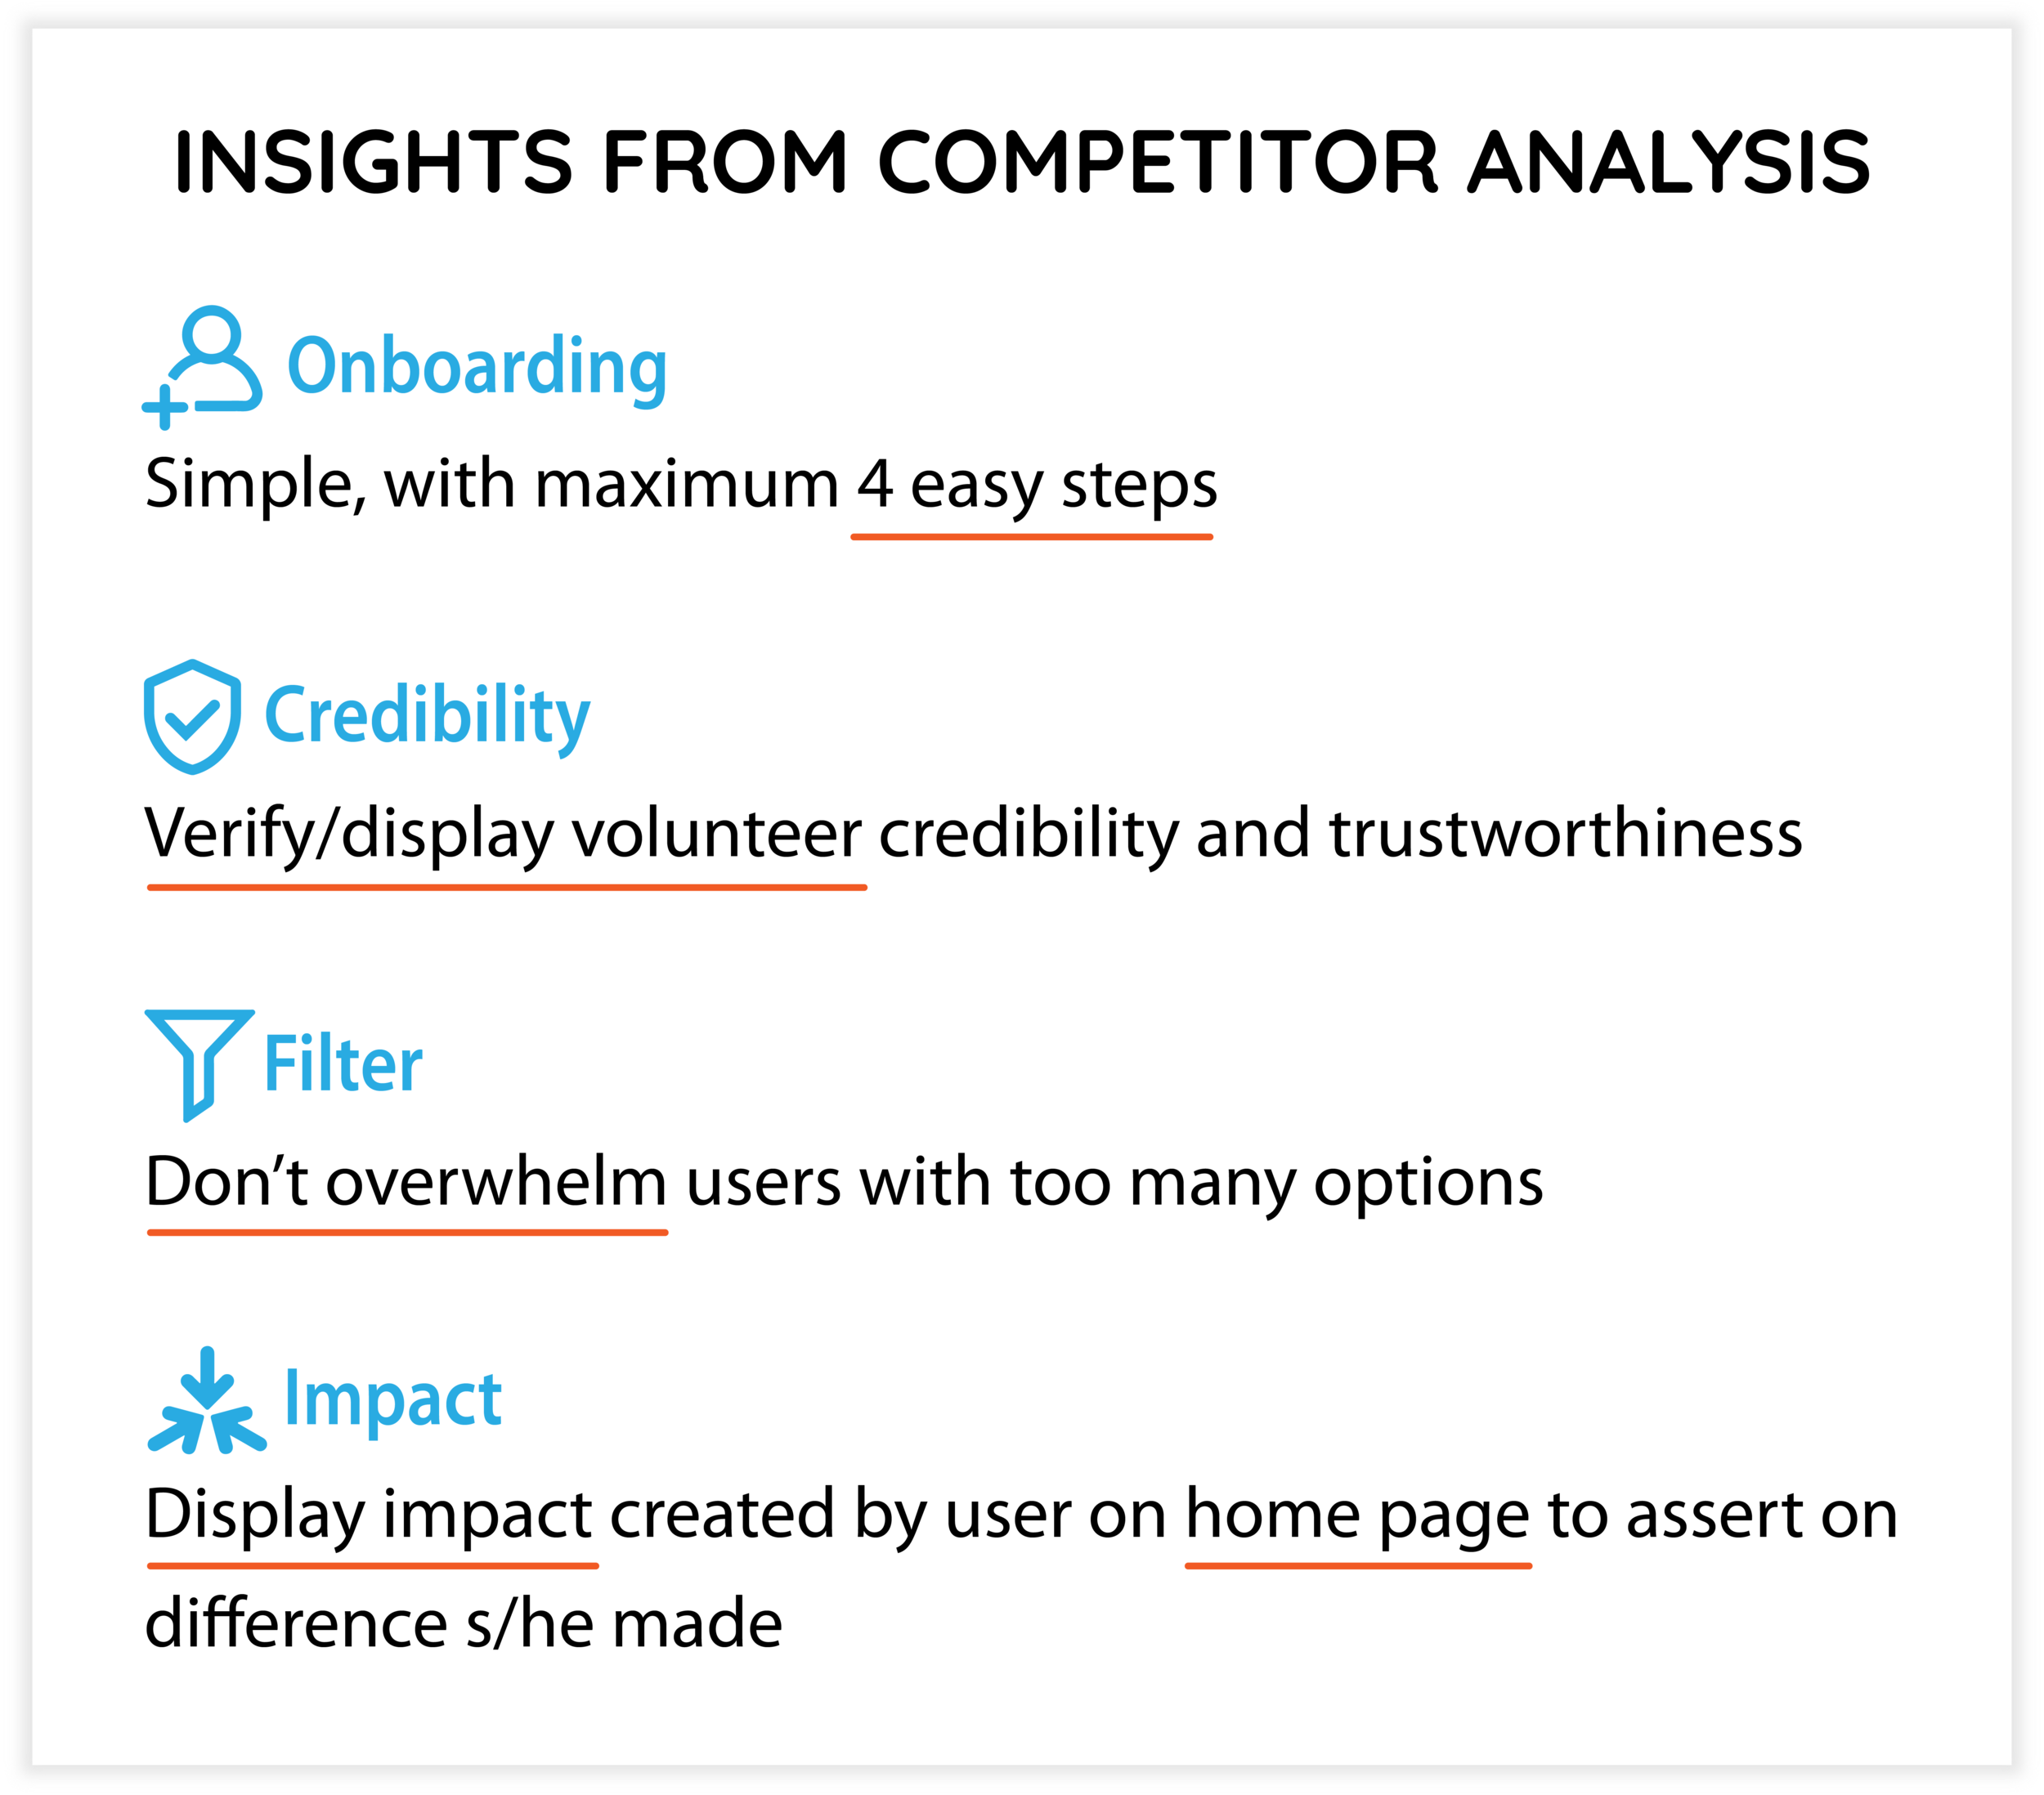 CompetitorInsights-02.png